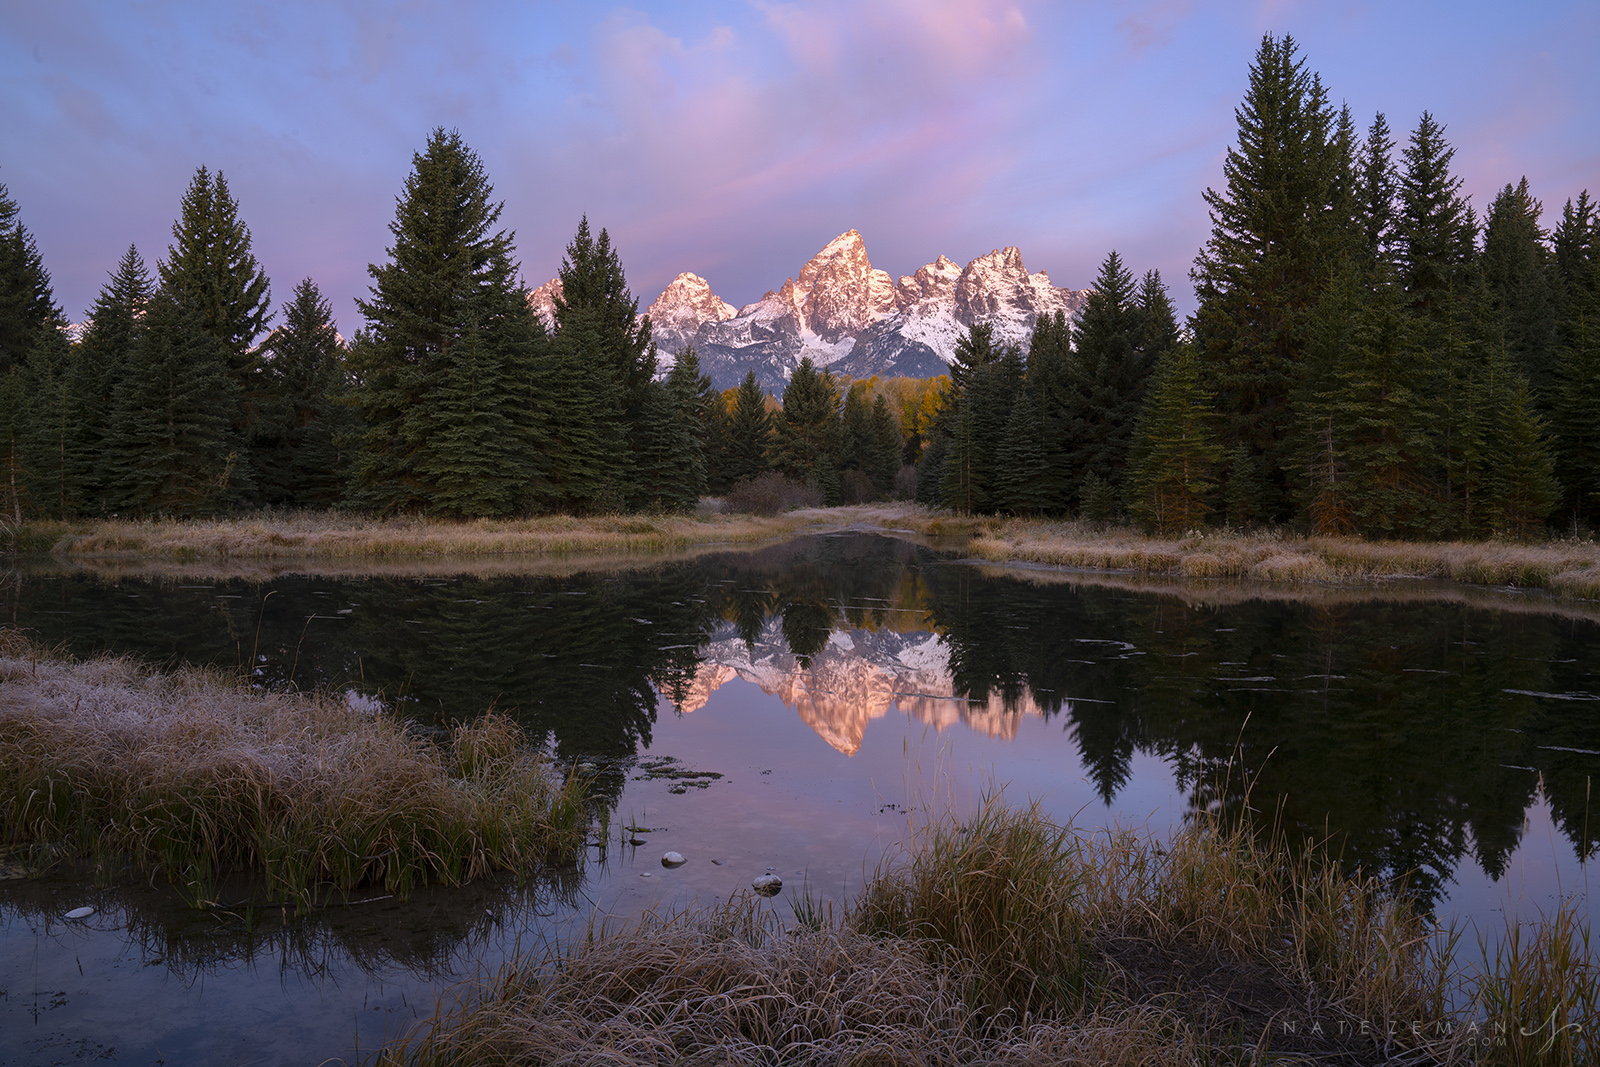 Newly dusted in autumn snow, the Tetons are perfectly reflected in a beaver pond along the Snake River.